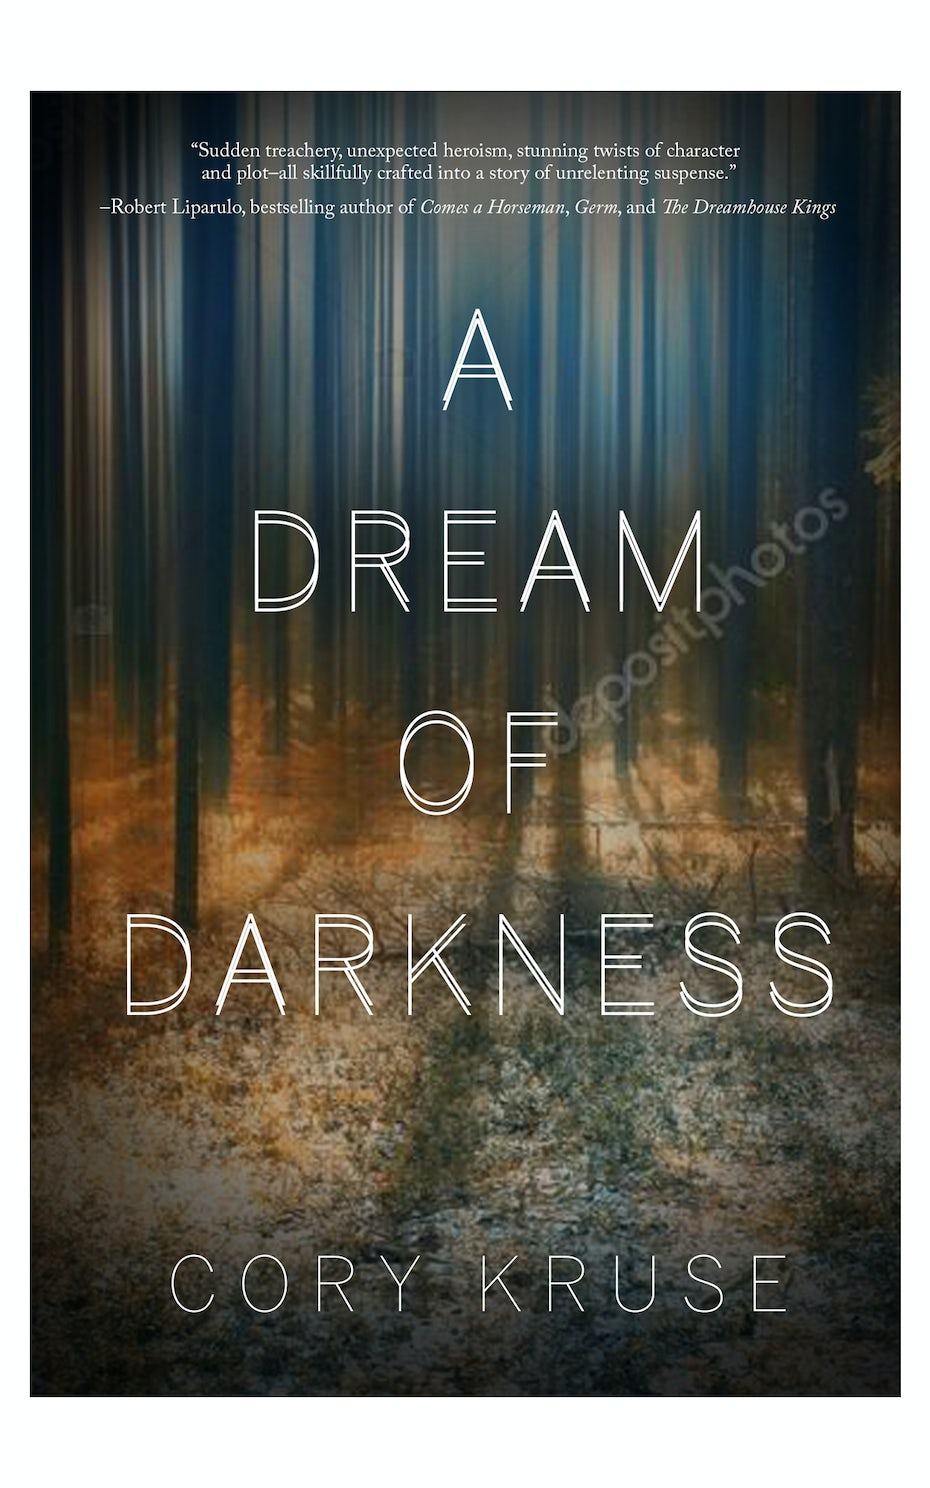 A dream of darkness book cover